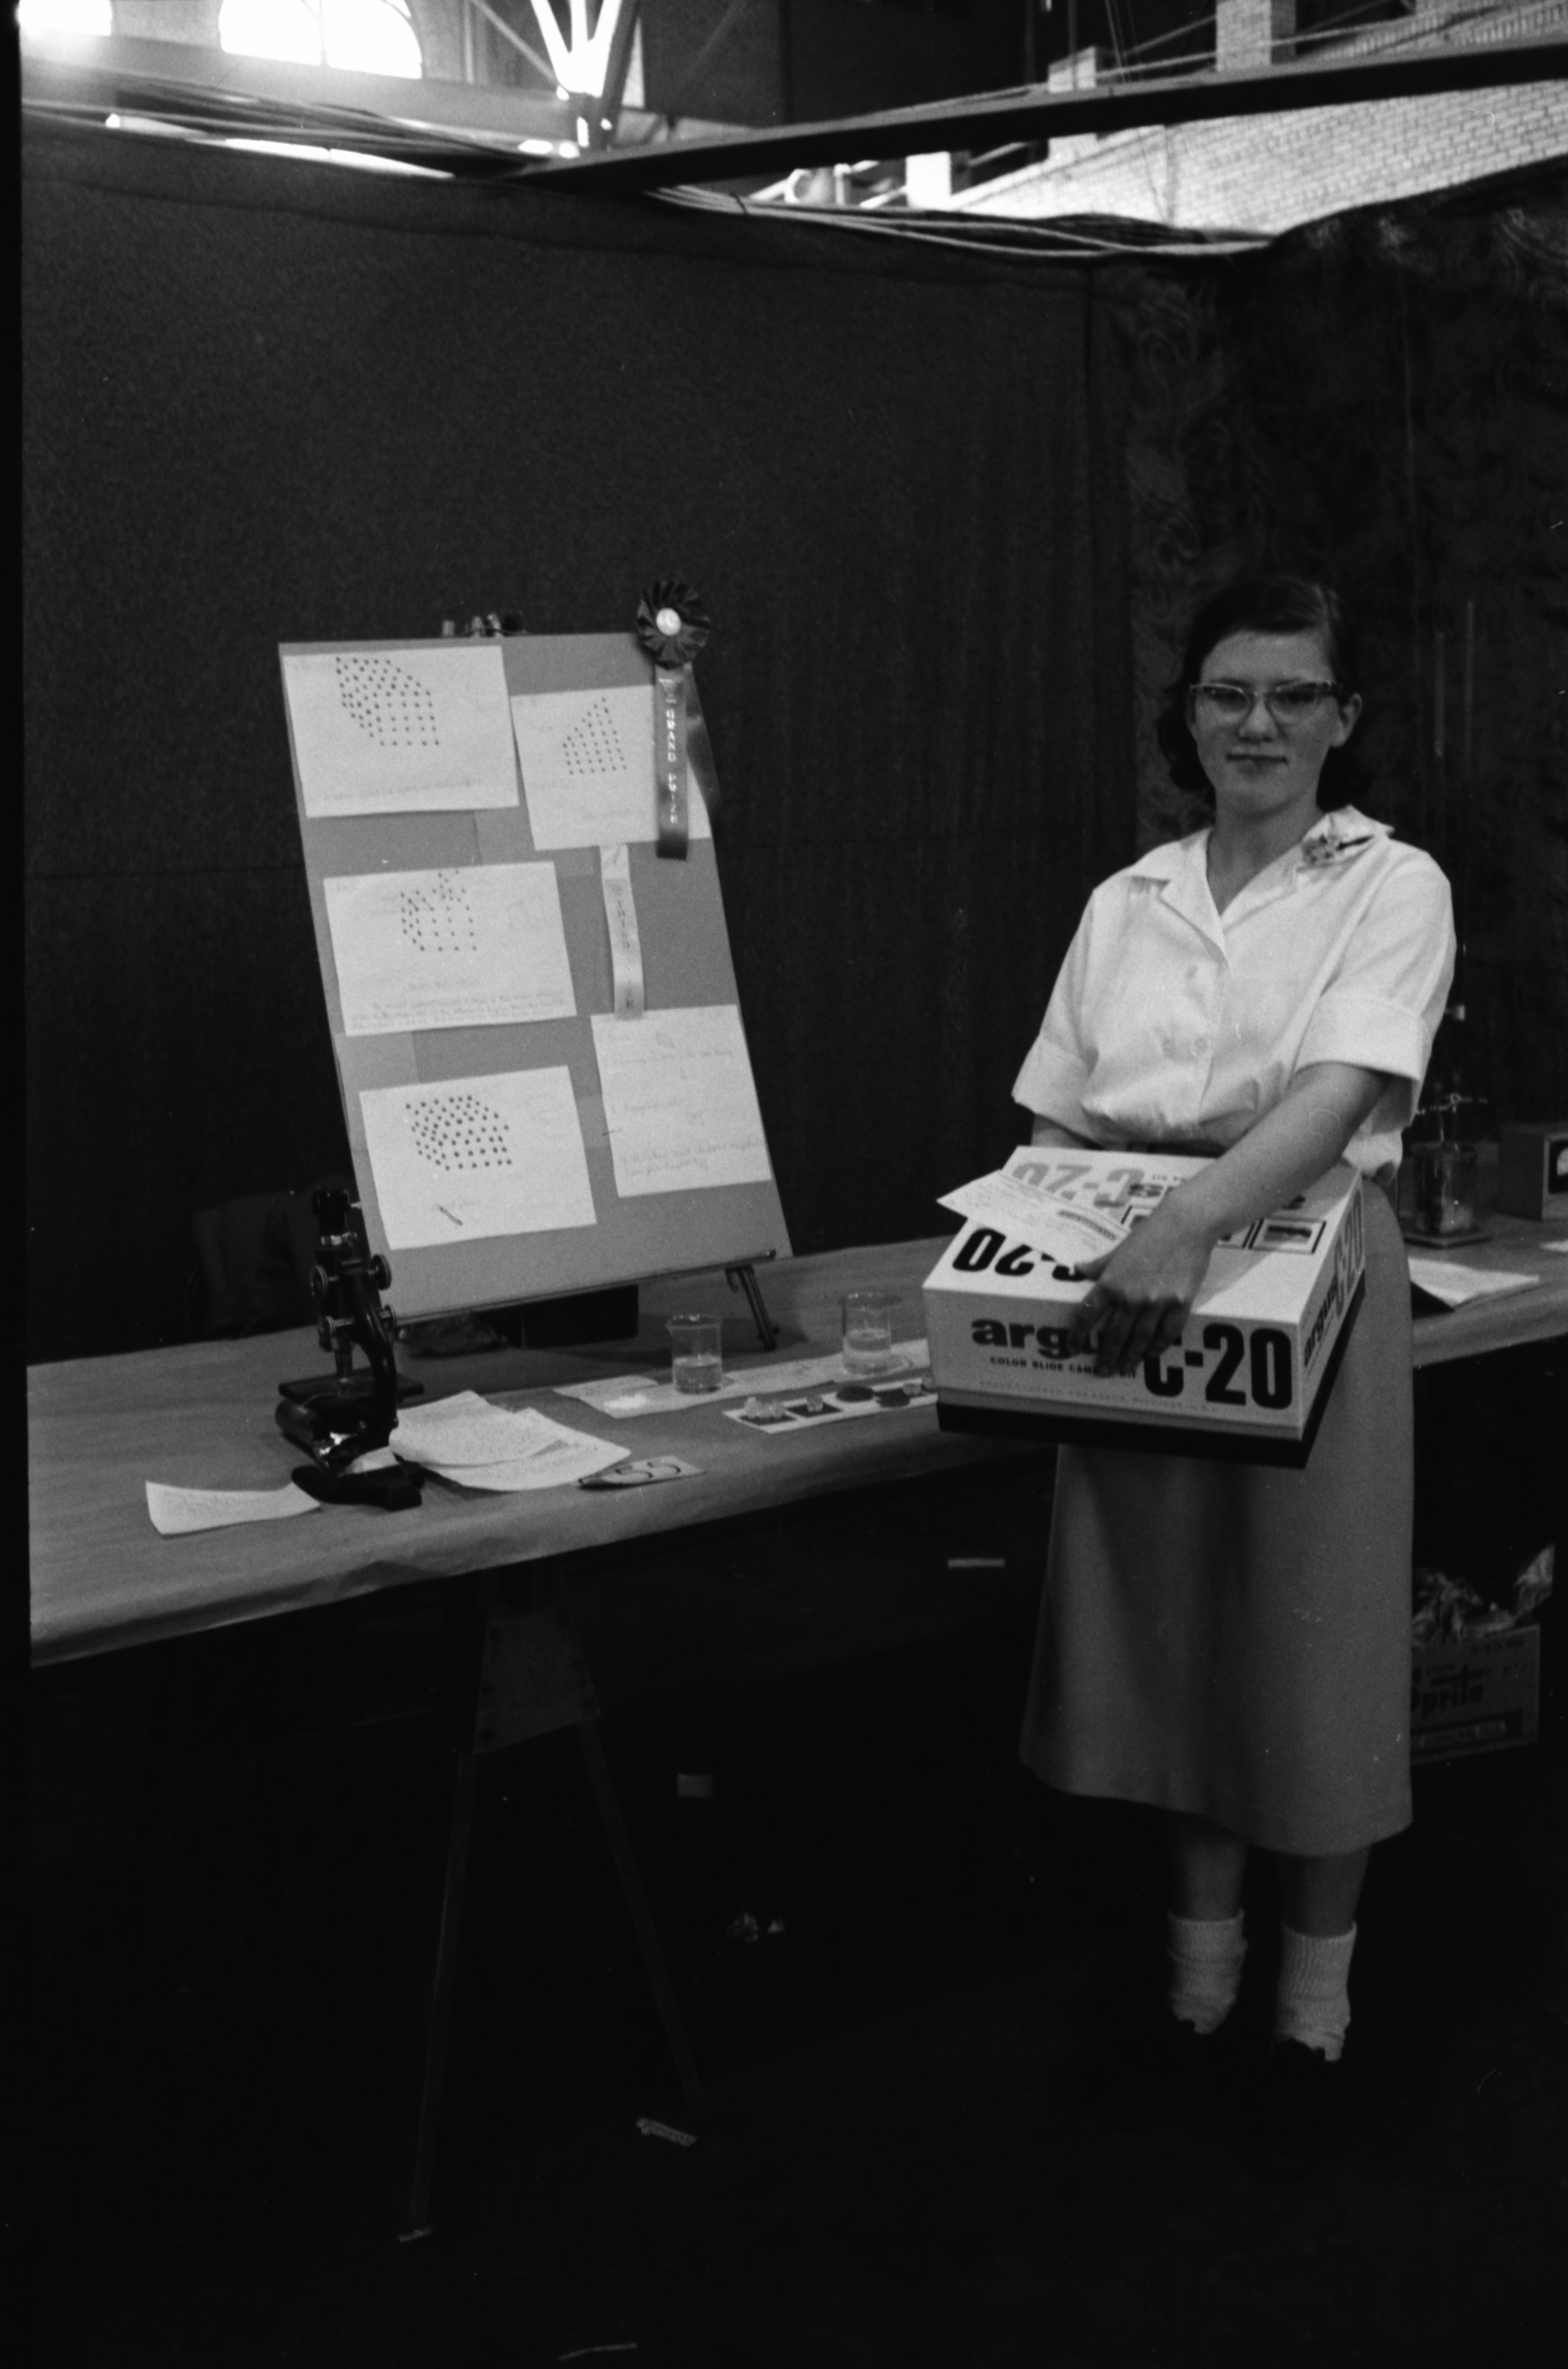 Mary Ann Tiffany, of Ann Arbor High School, wins first place in the senior division at the Southeast Michigan Science Fair, April 1960 image